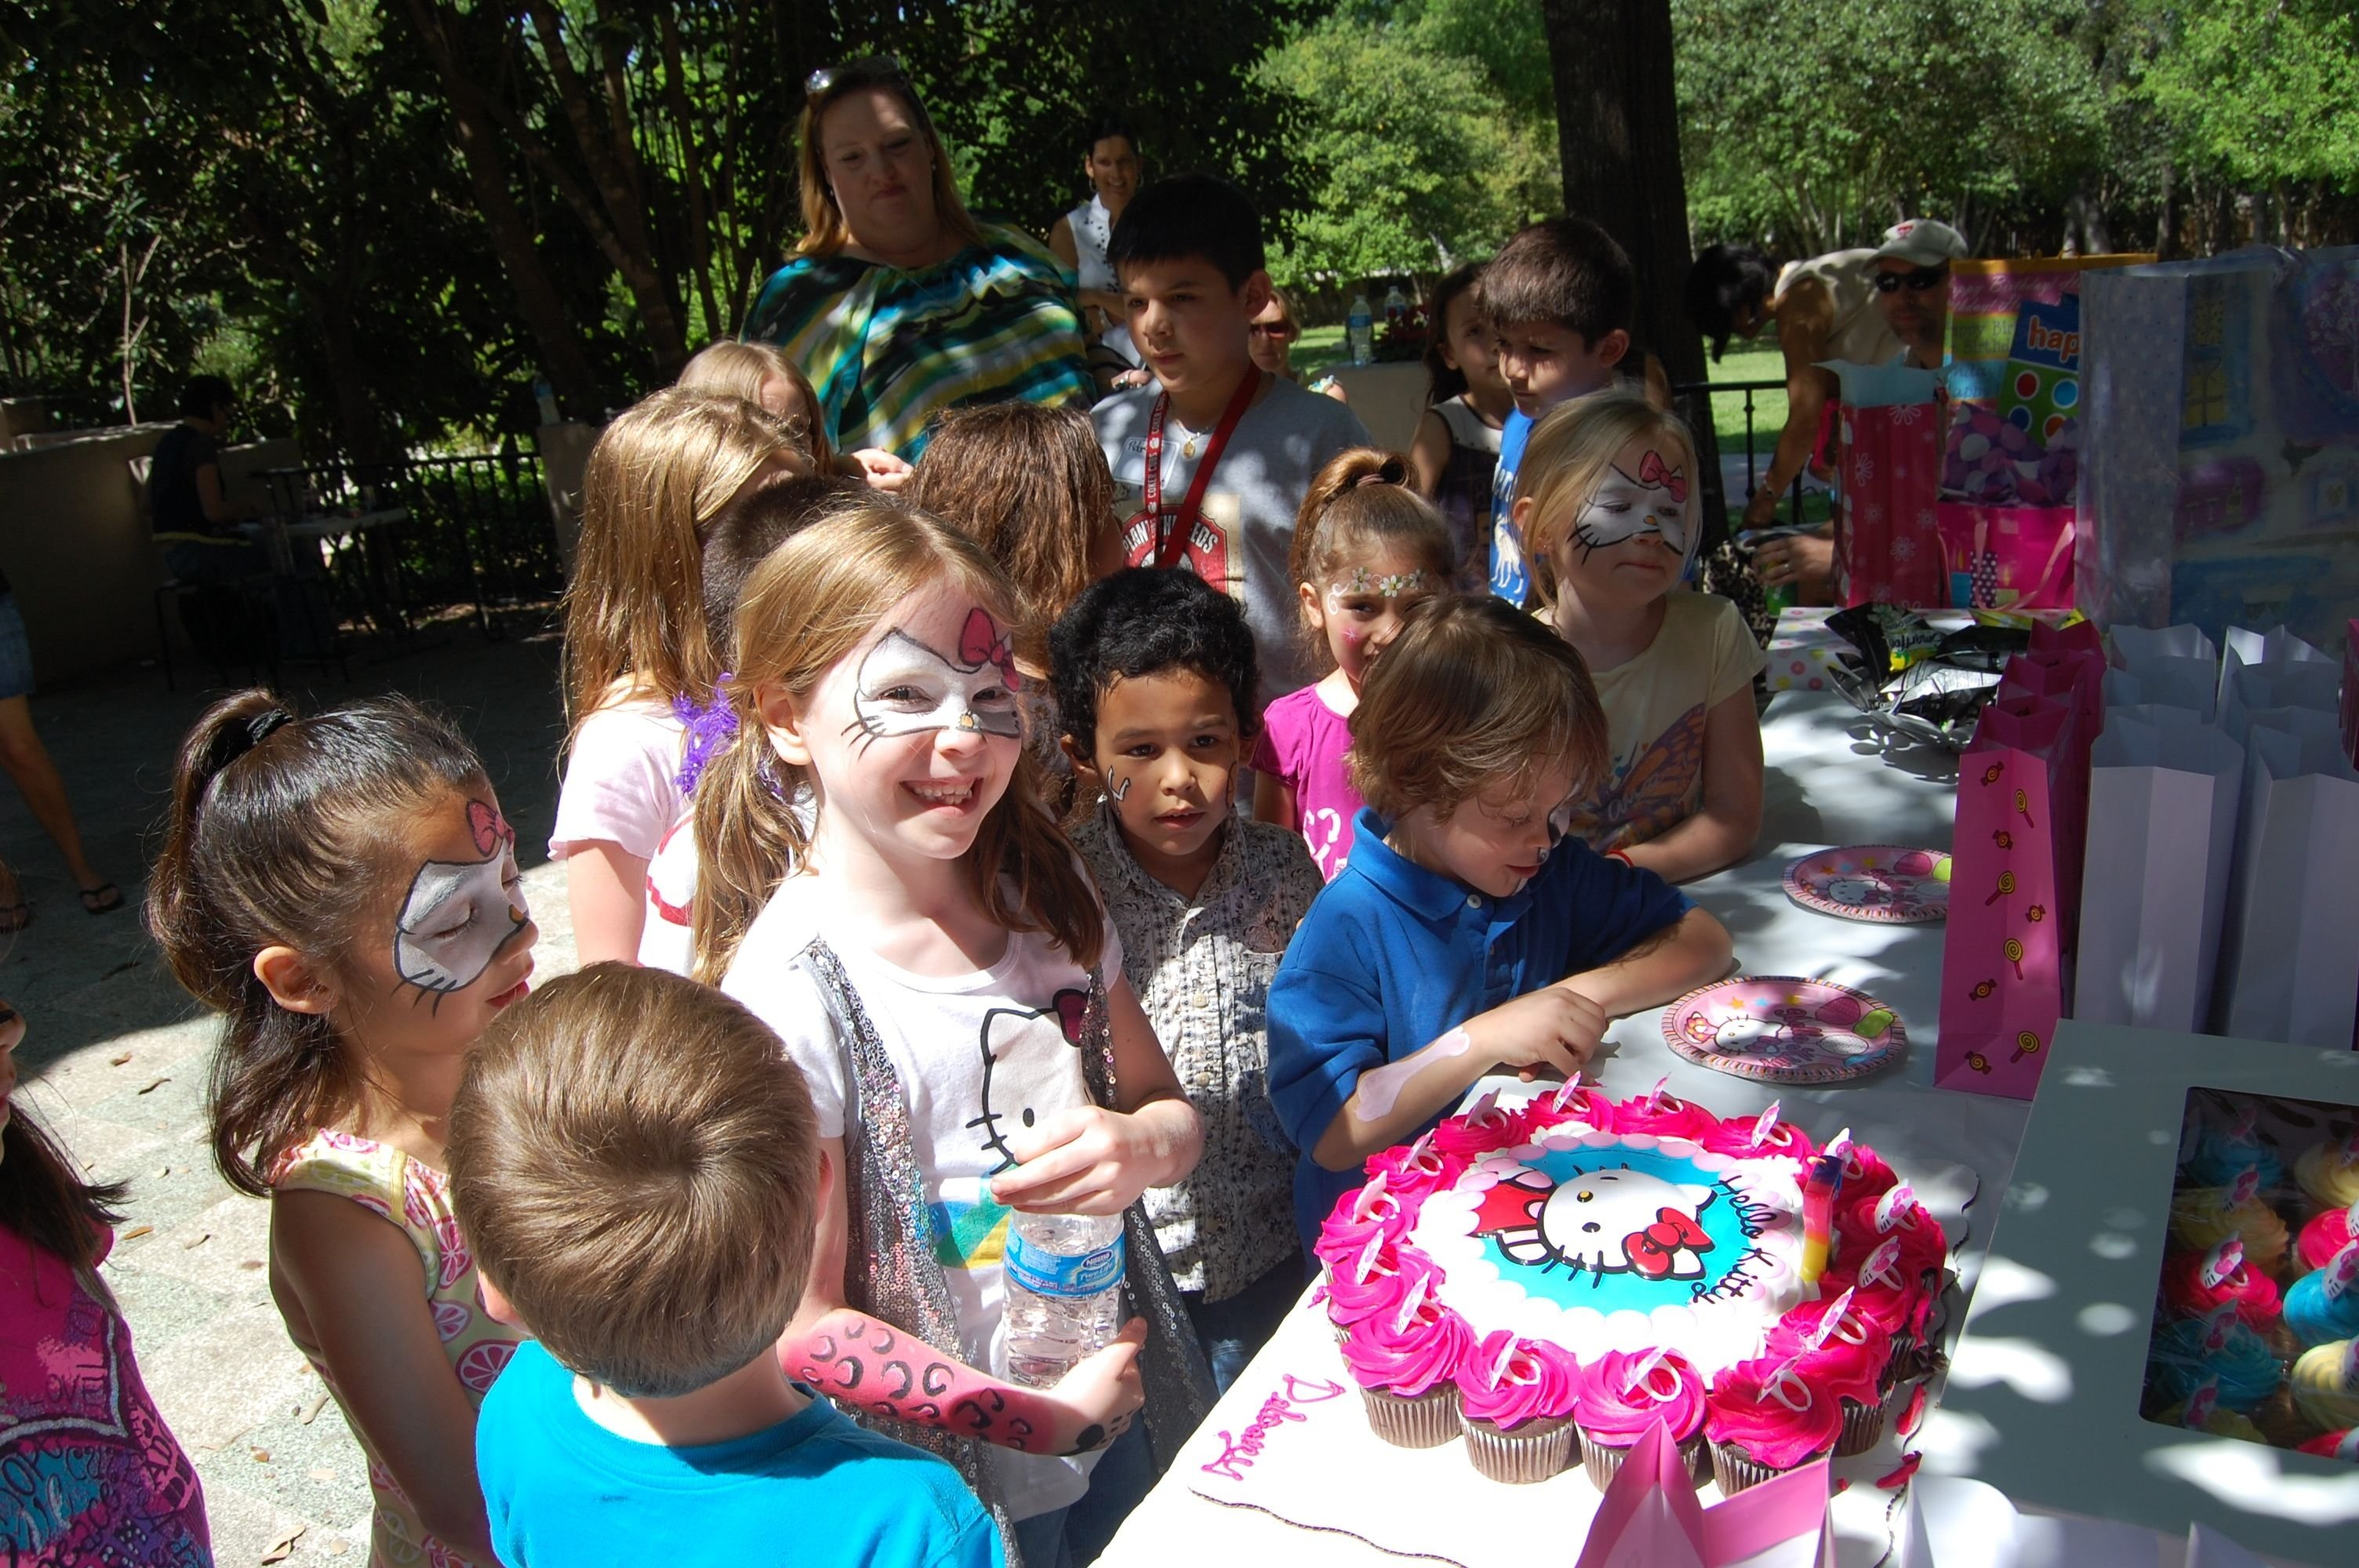 10 Stylish Birthday Party Ideas San Antonio landa library for a beautiful and affordable birthday party in the 2020